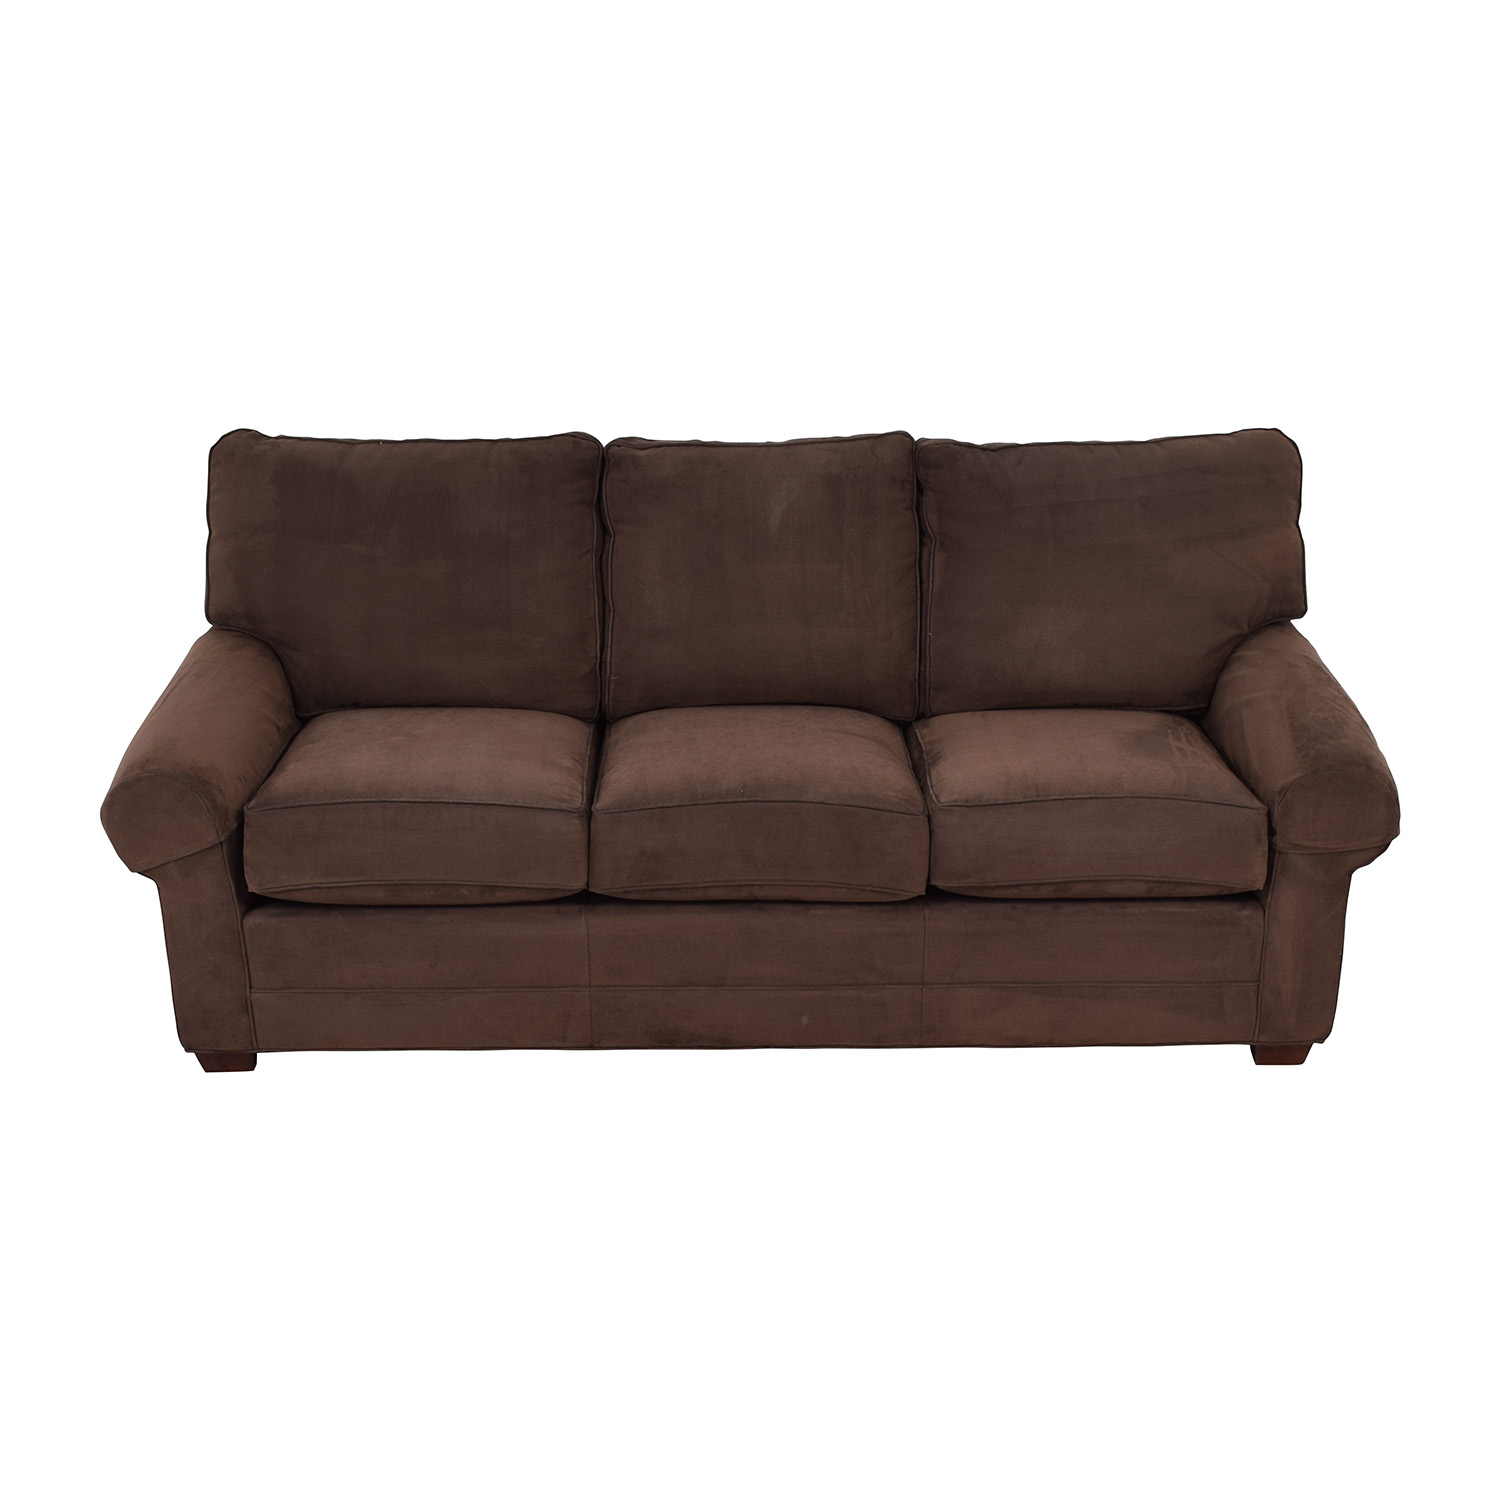 Masterfield Furniture Masterfield Furniture Brown Three-Cushion Couch on sale